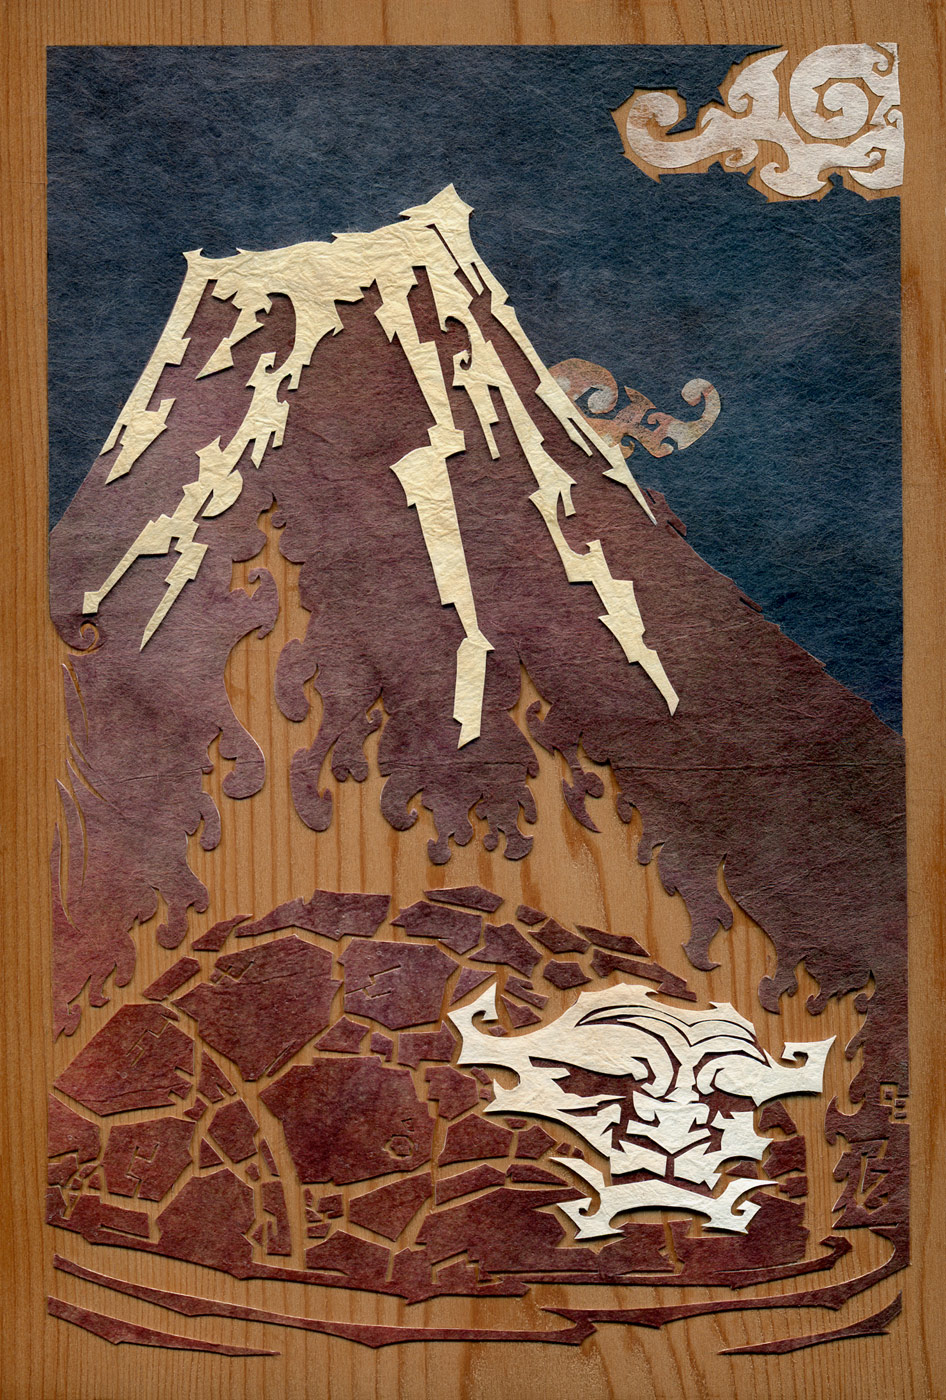 ⊛  He of the Flame   ⊛  cut paper + washi / wood   ⊛  6 x 4 in • 150  x 100 mm   ⊛  private collection